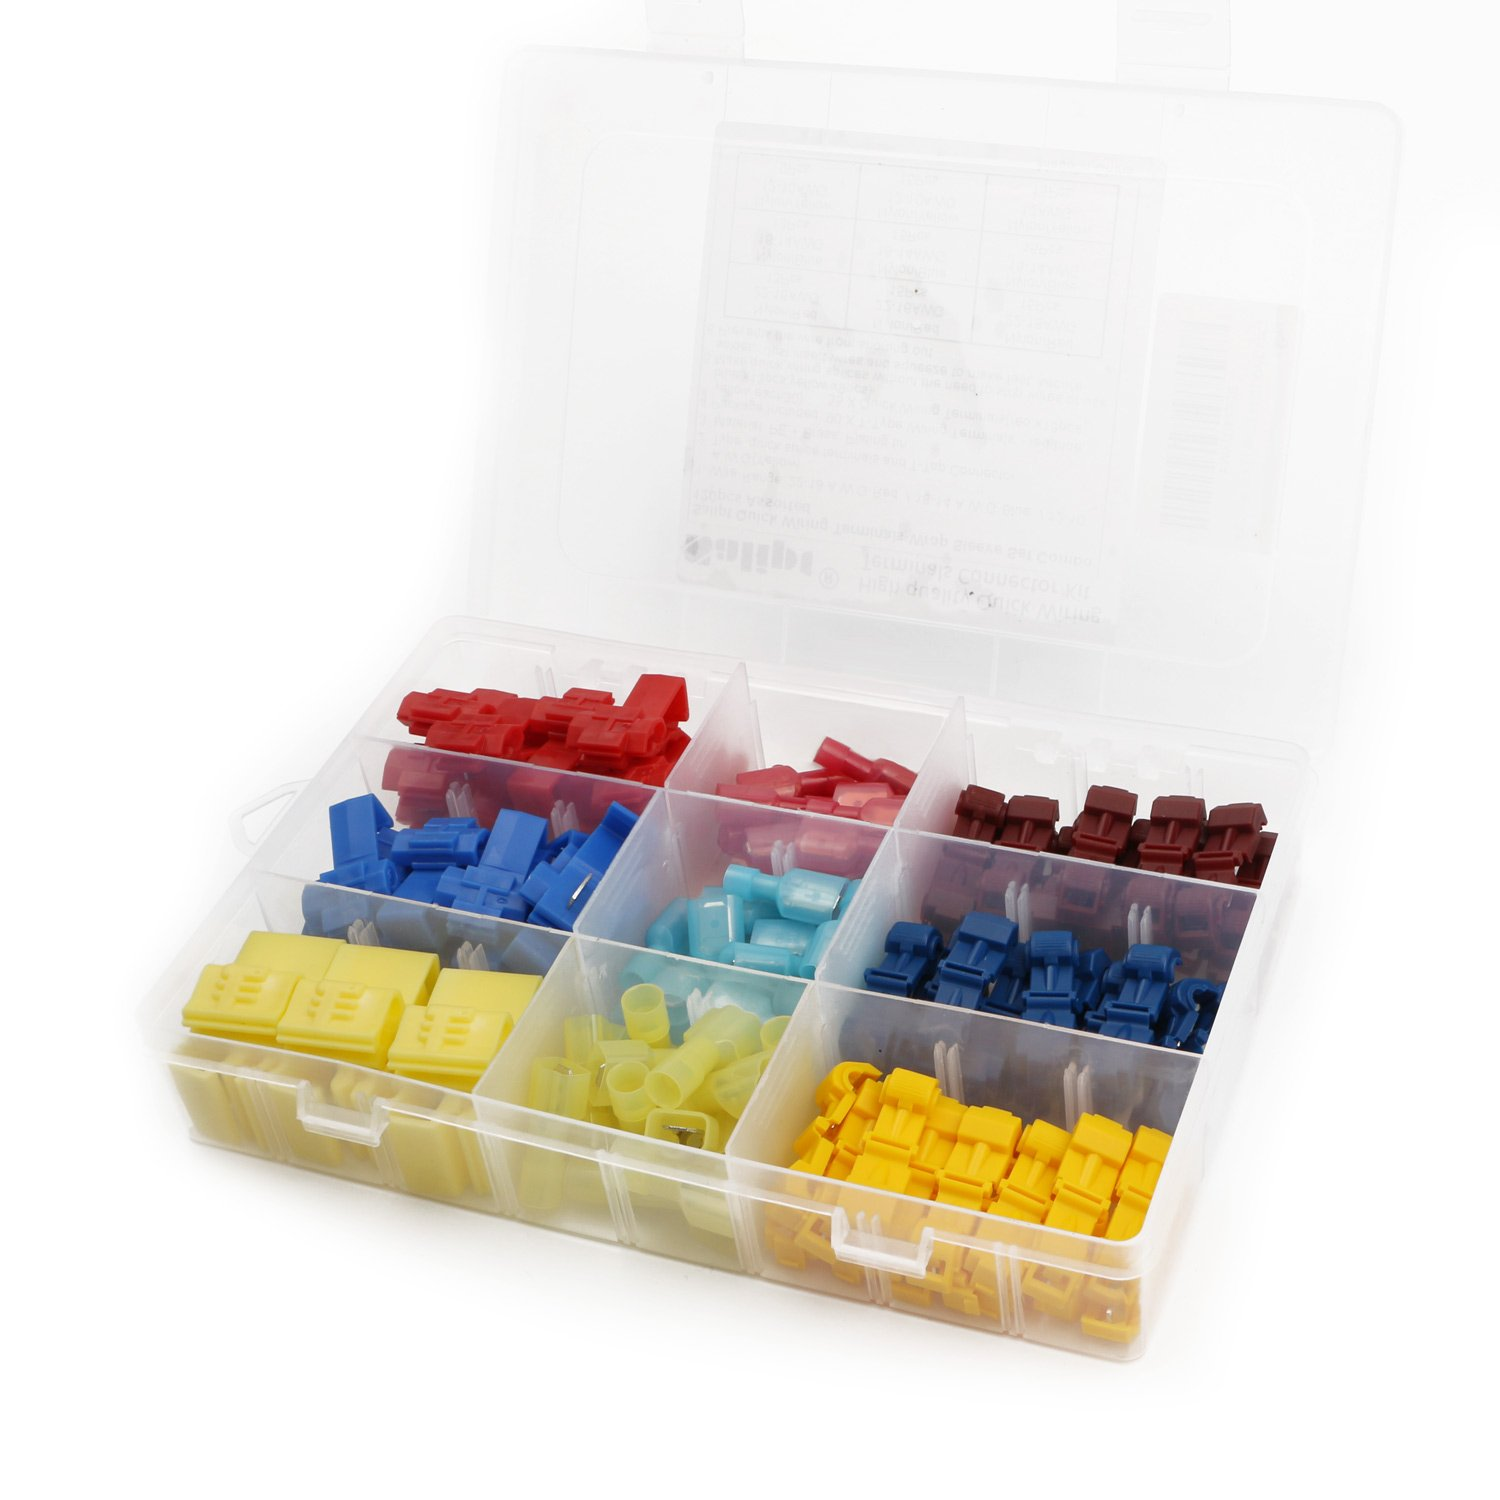 B0773DJXW4 Salipt Quick Splice Solderless Terminals and T-Tap Electrical Connector Assortment Kit 120pcs with Case 718IXL7G24L